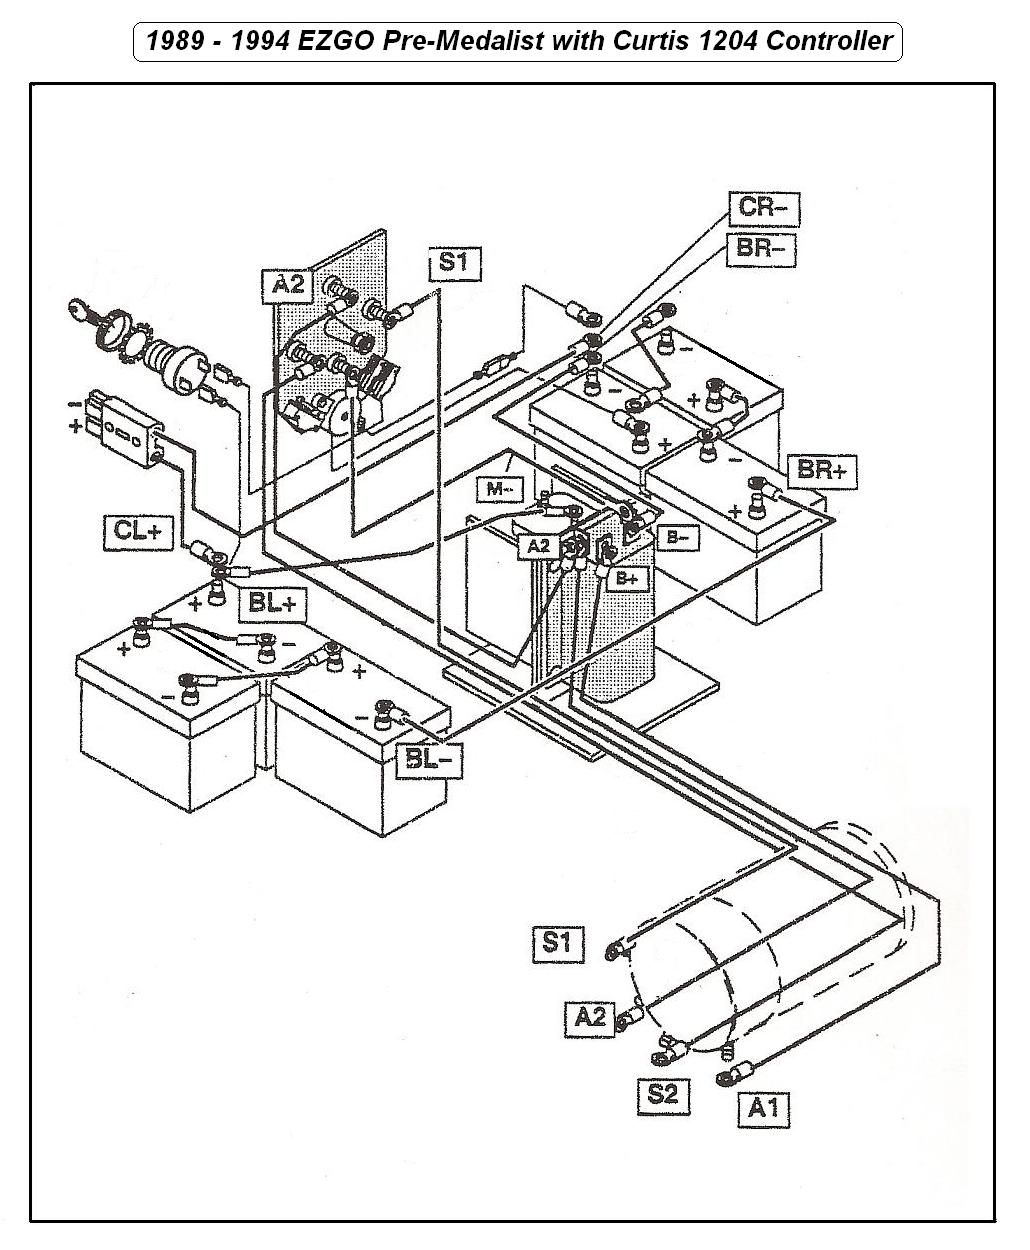 A89_94EZ_Wiring ezgo wiring diagram ezgo fuel pump \u2022 wiring diagrams j squared co 36 volt ez go golf cart wiring diagram at bayanpartner.co